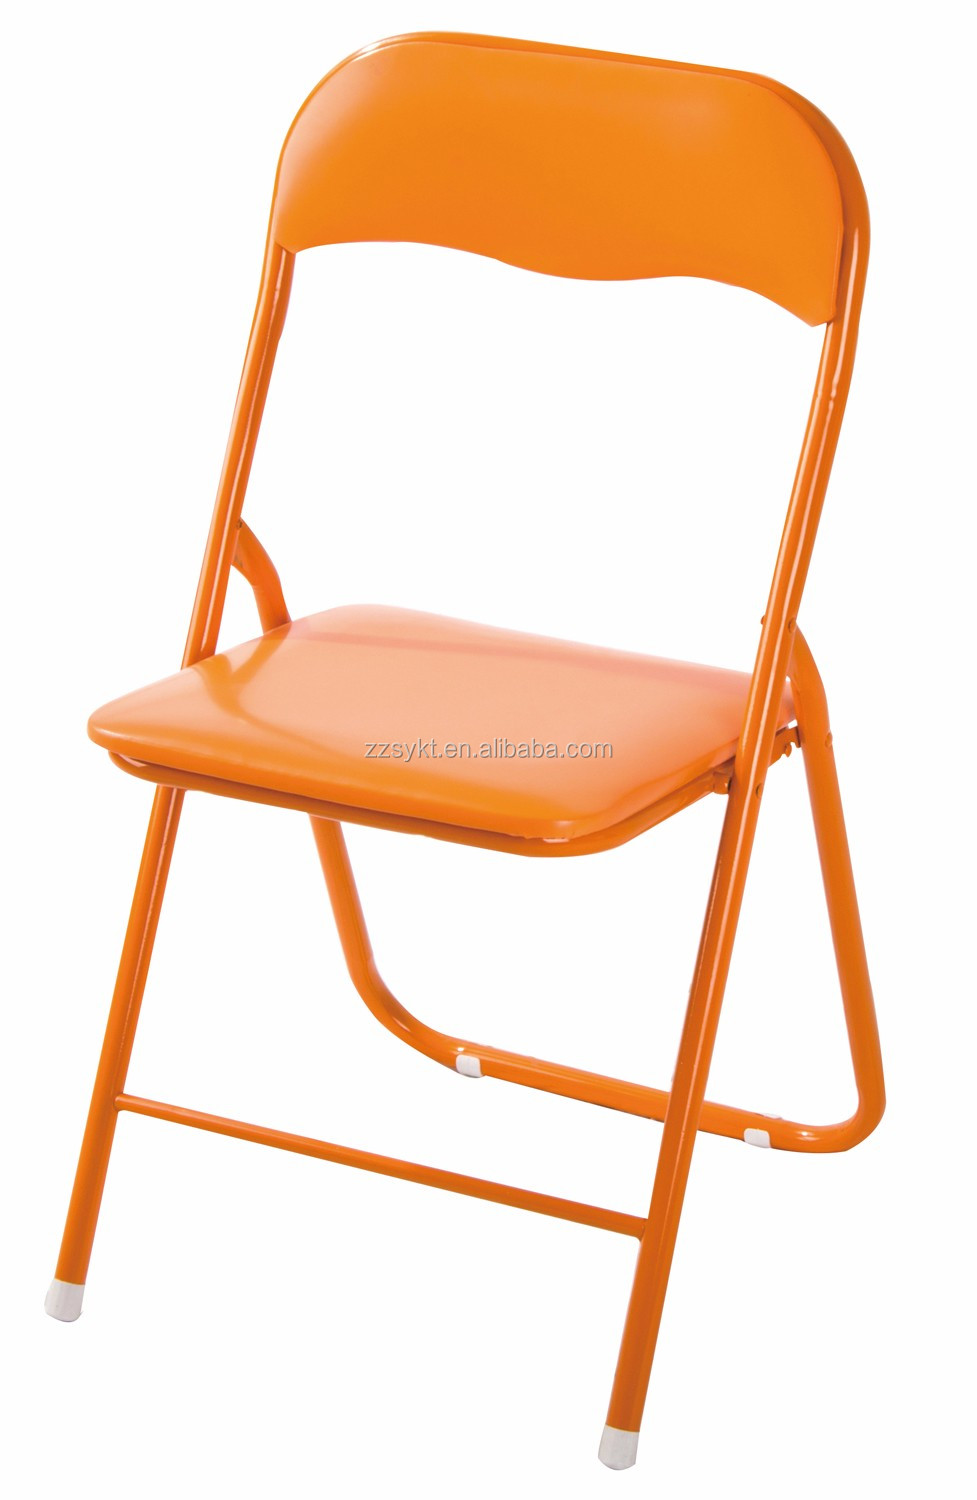 Cheap Metal Folding Chairs With Pvc Seat And Back For Sale